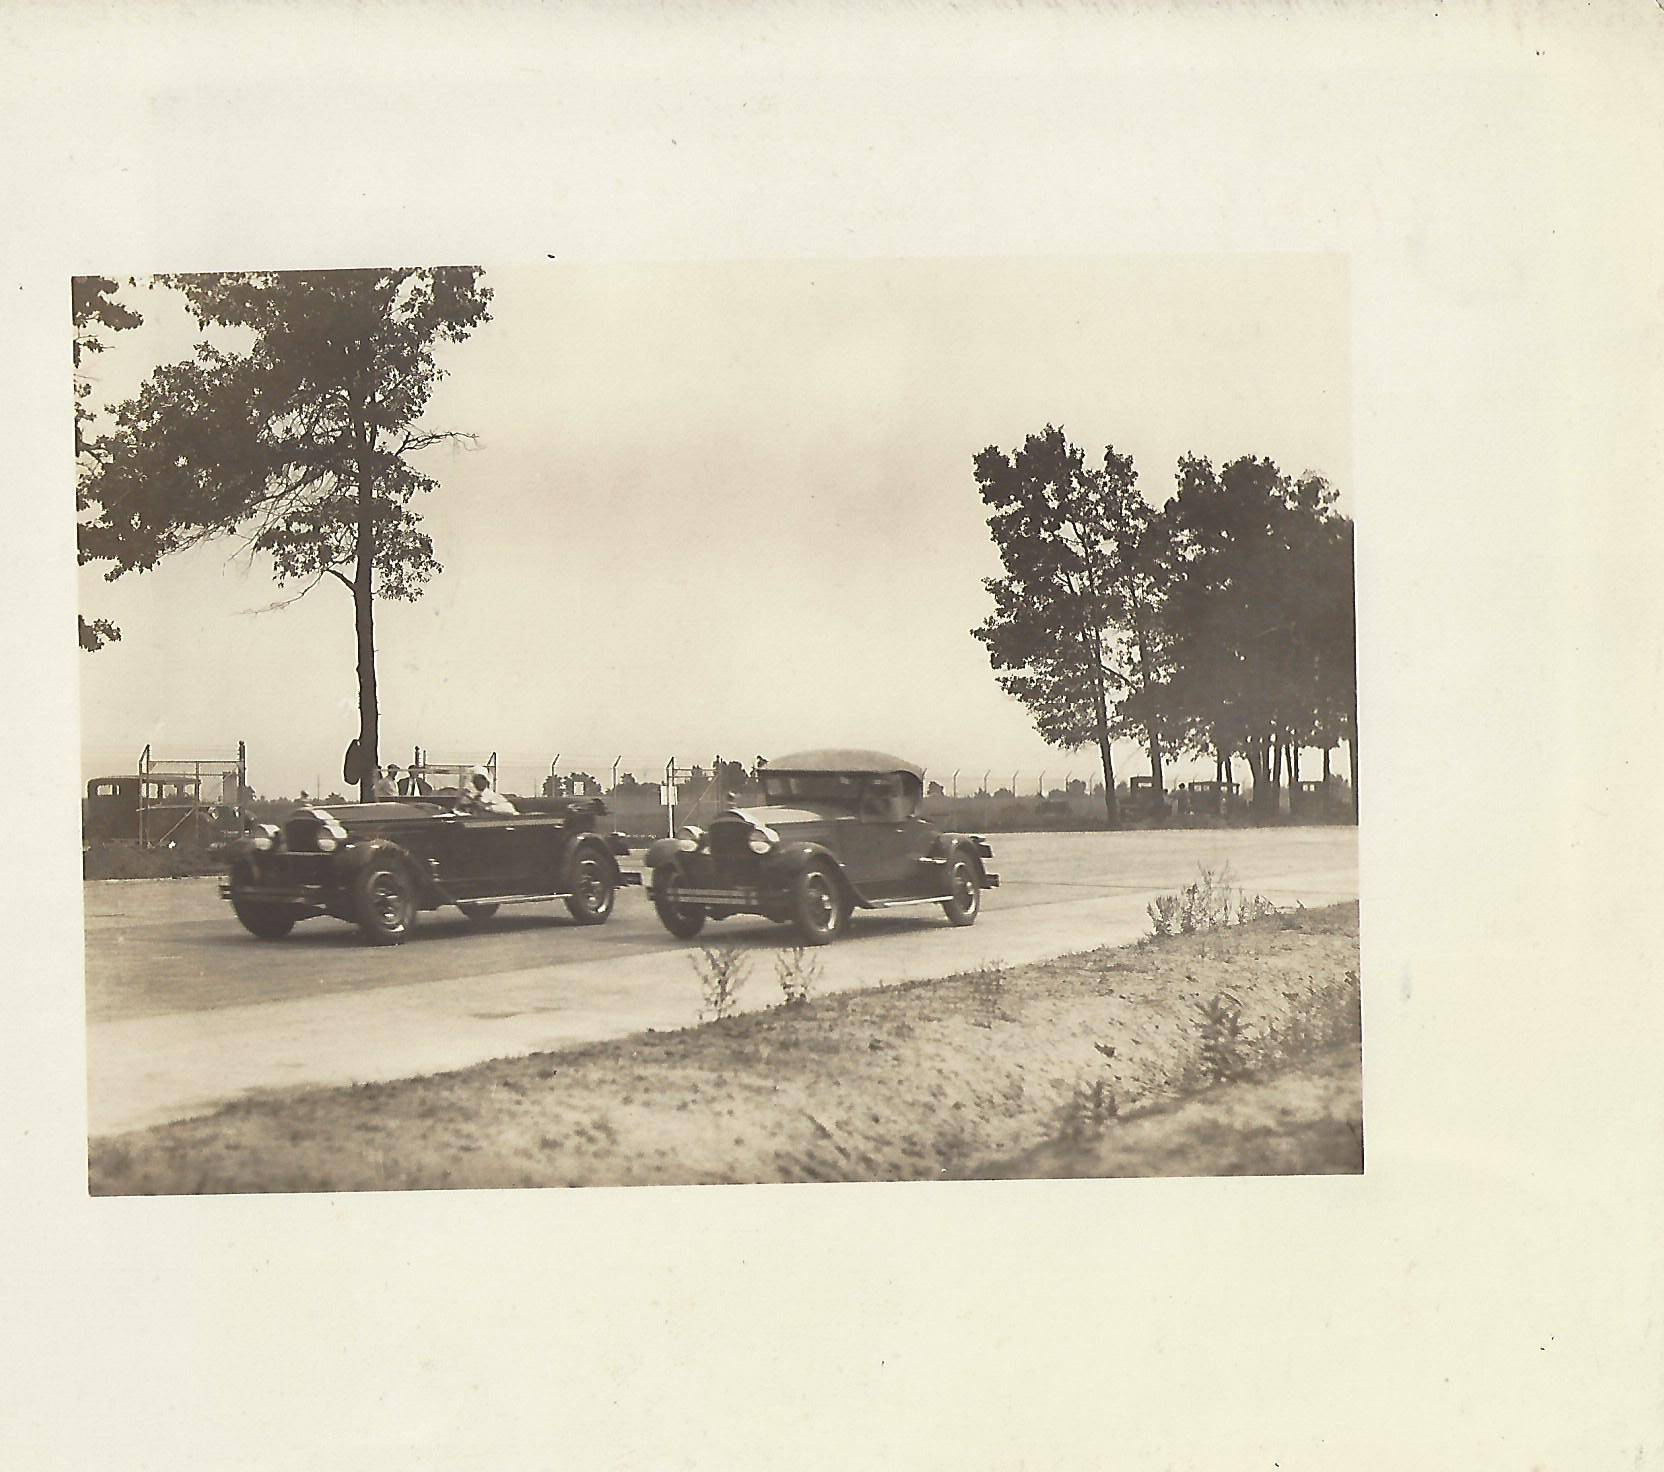 PACKARD PROVING GROUNDS - 2733-A